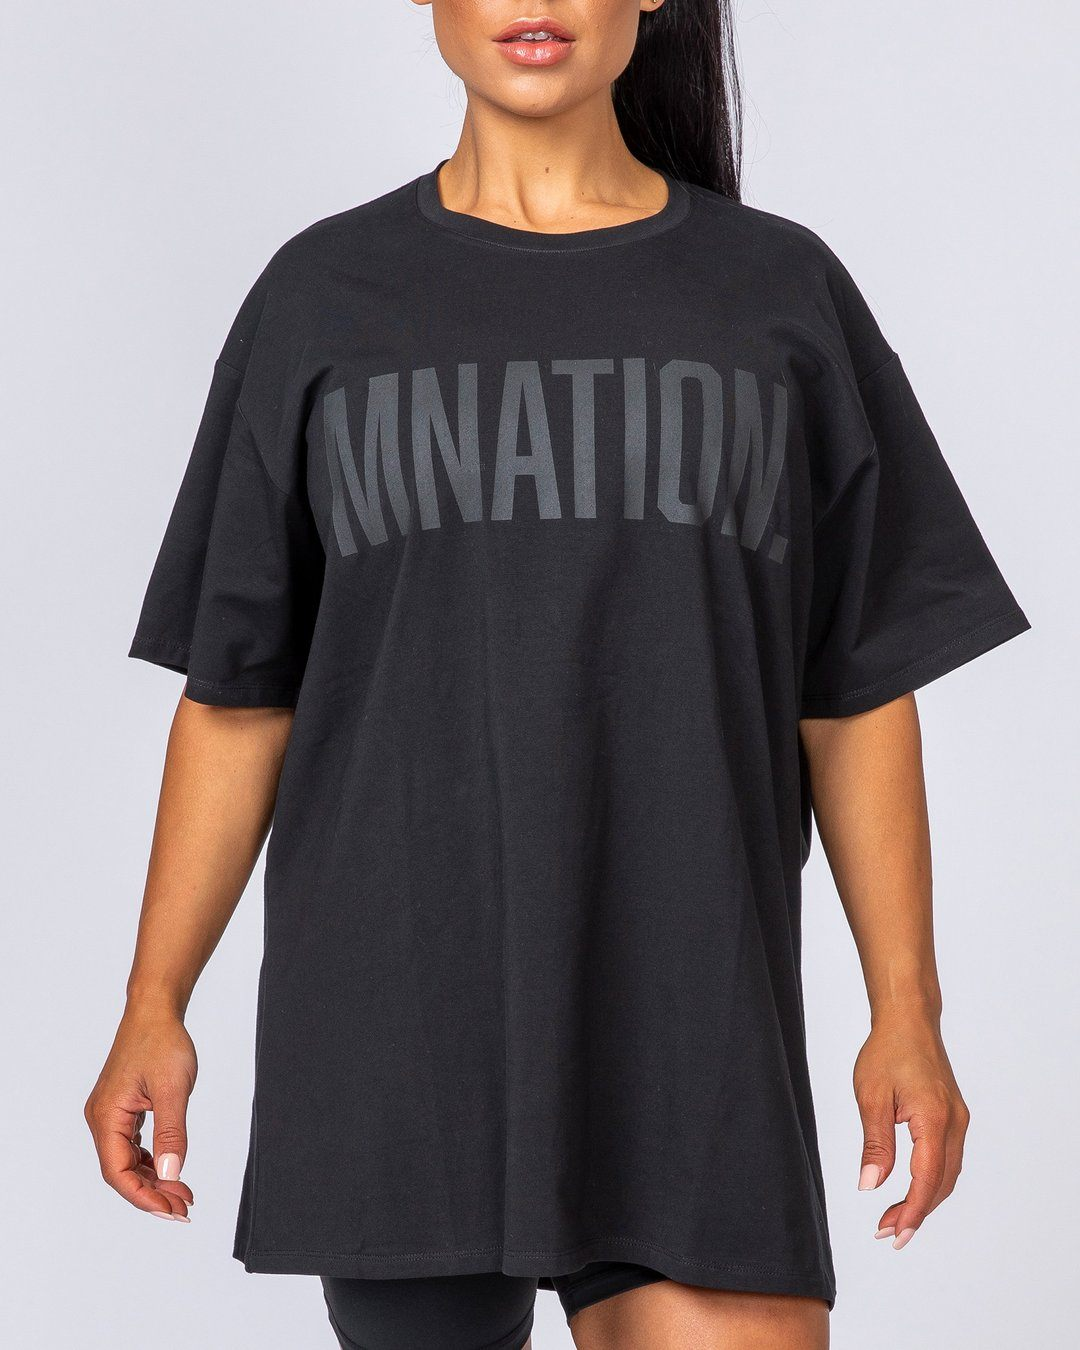 Muscle Nation Oversized Tonal Tee - Black